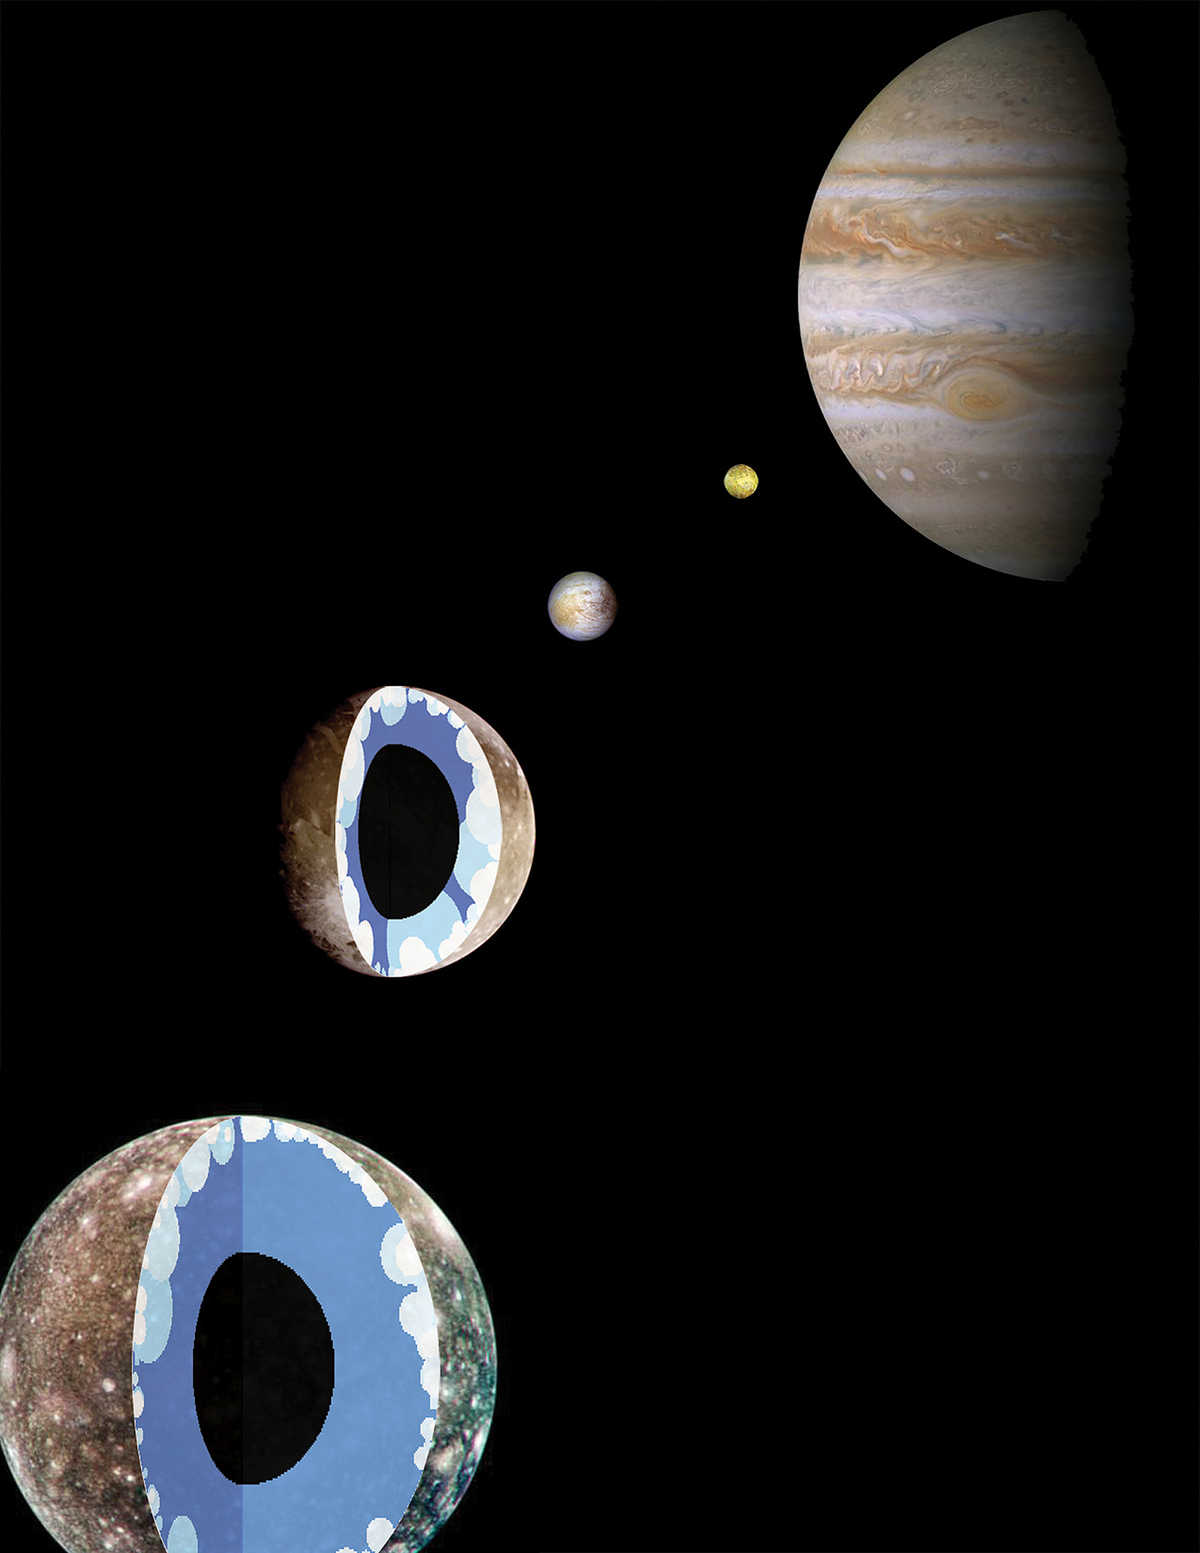 Jupiter (right) and the Galilean satellites (right to left) Io, Europa, Ganymede, and Callisto.